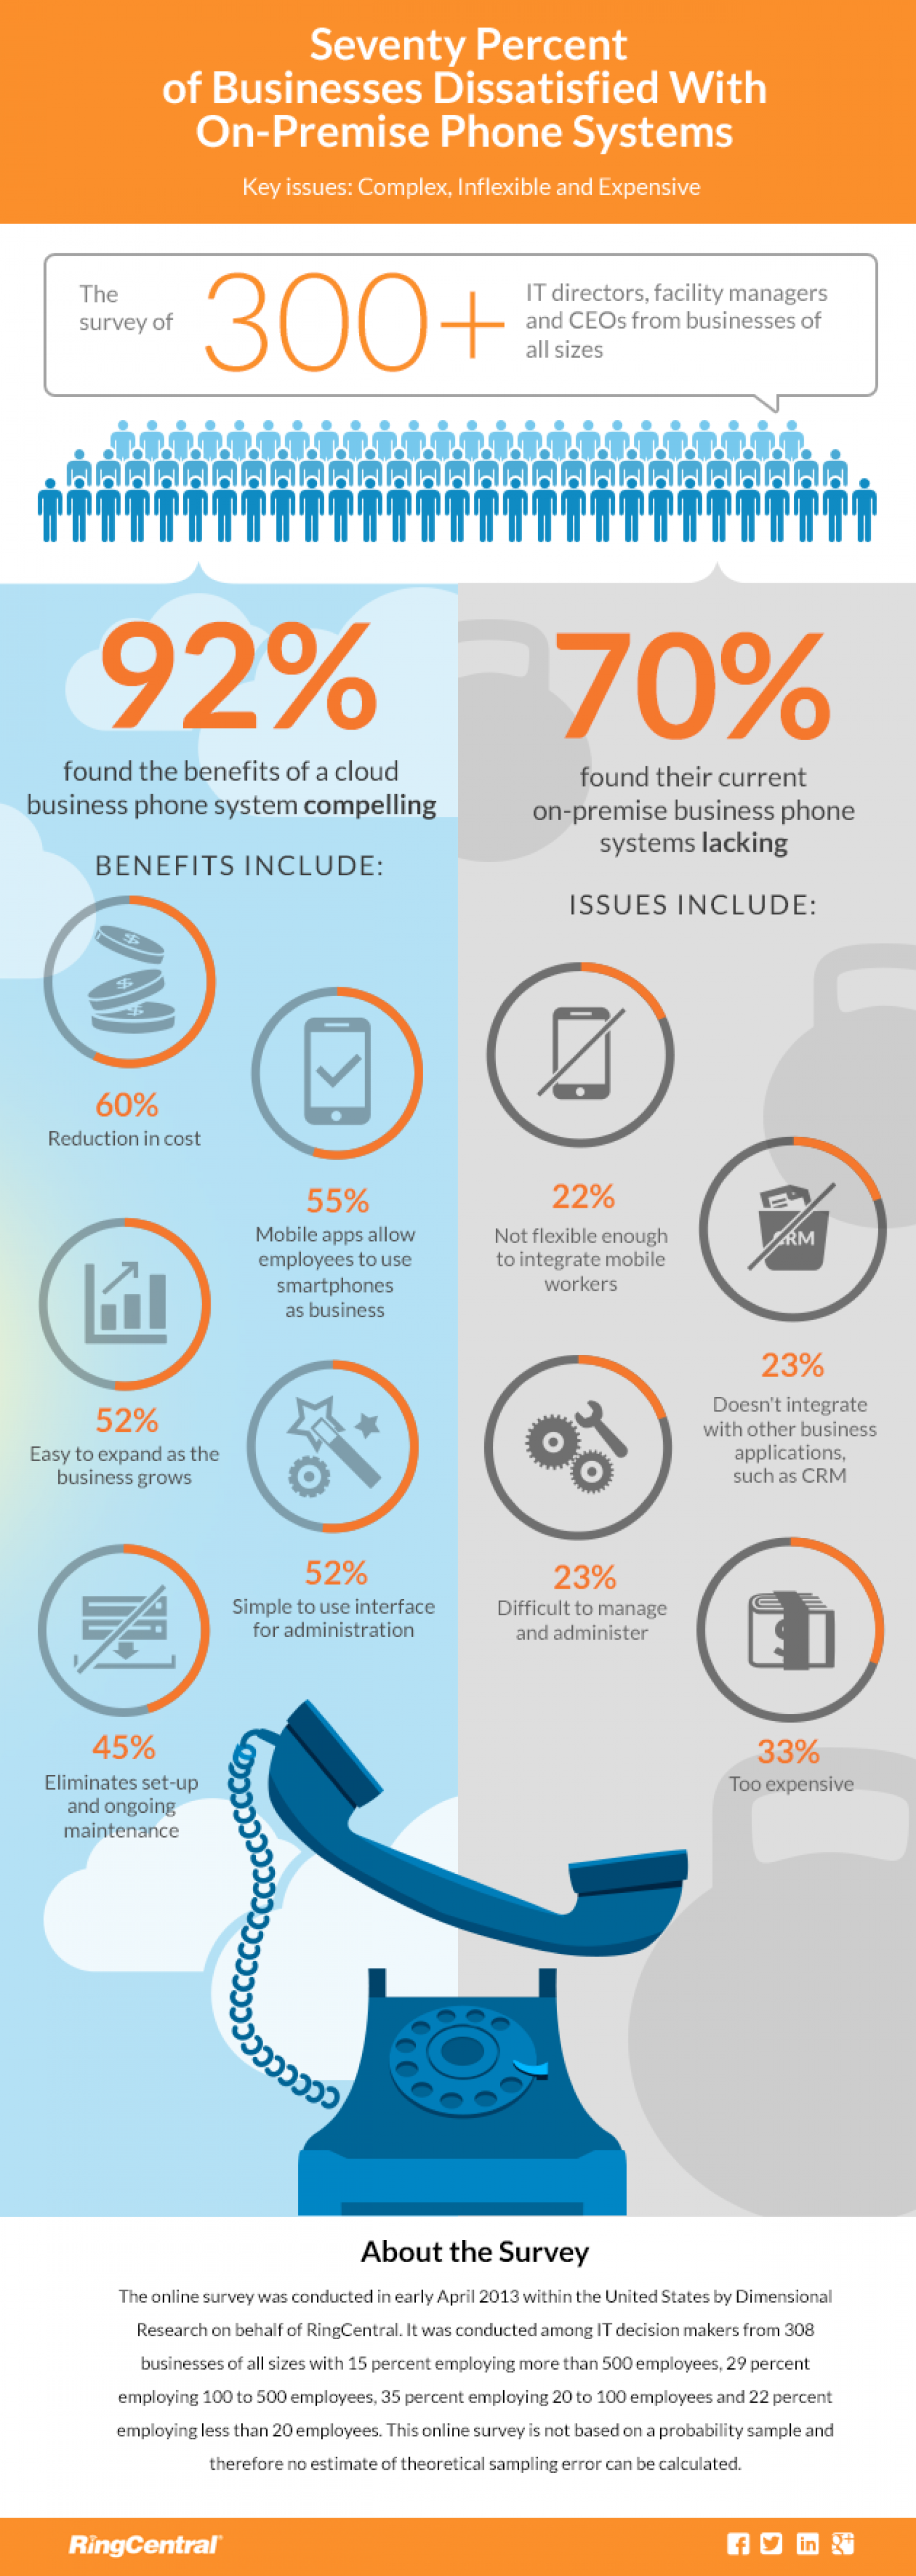 Seventy Percent of Businesses Dissatisfied With On-Premise Phone Systems Infographic